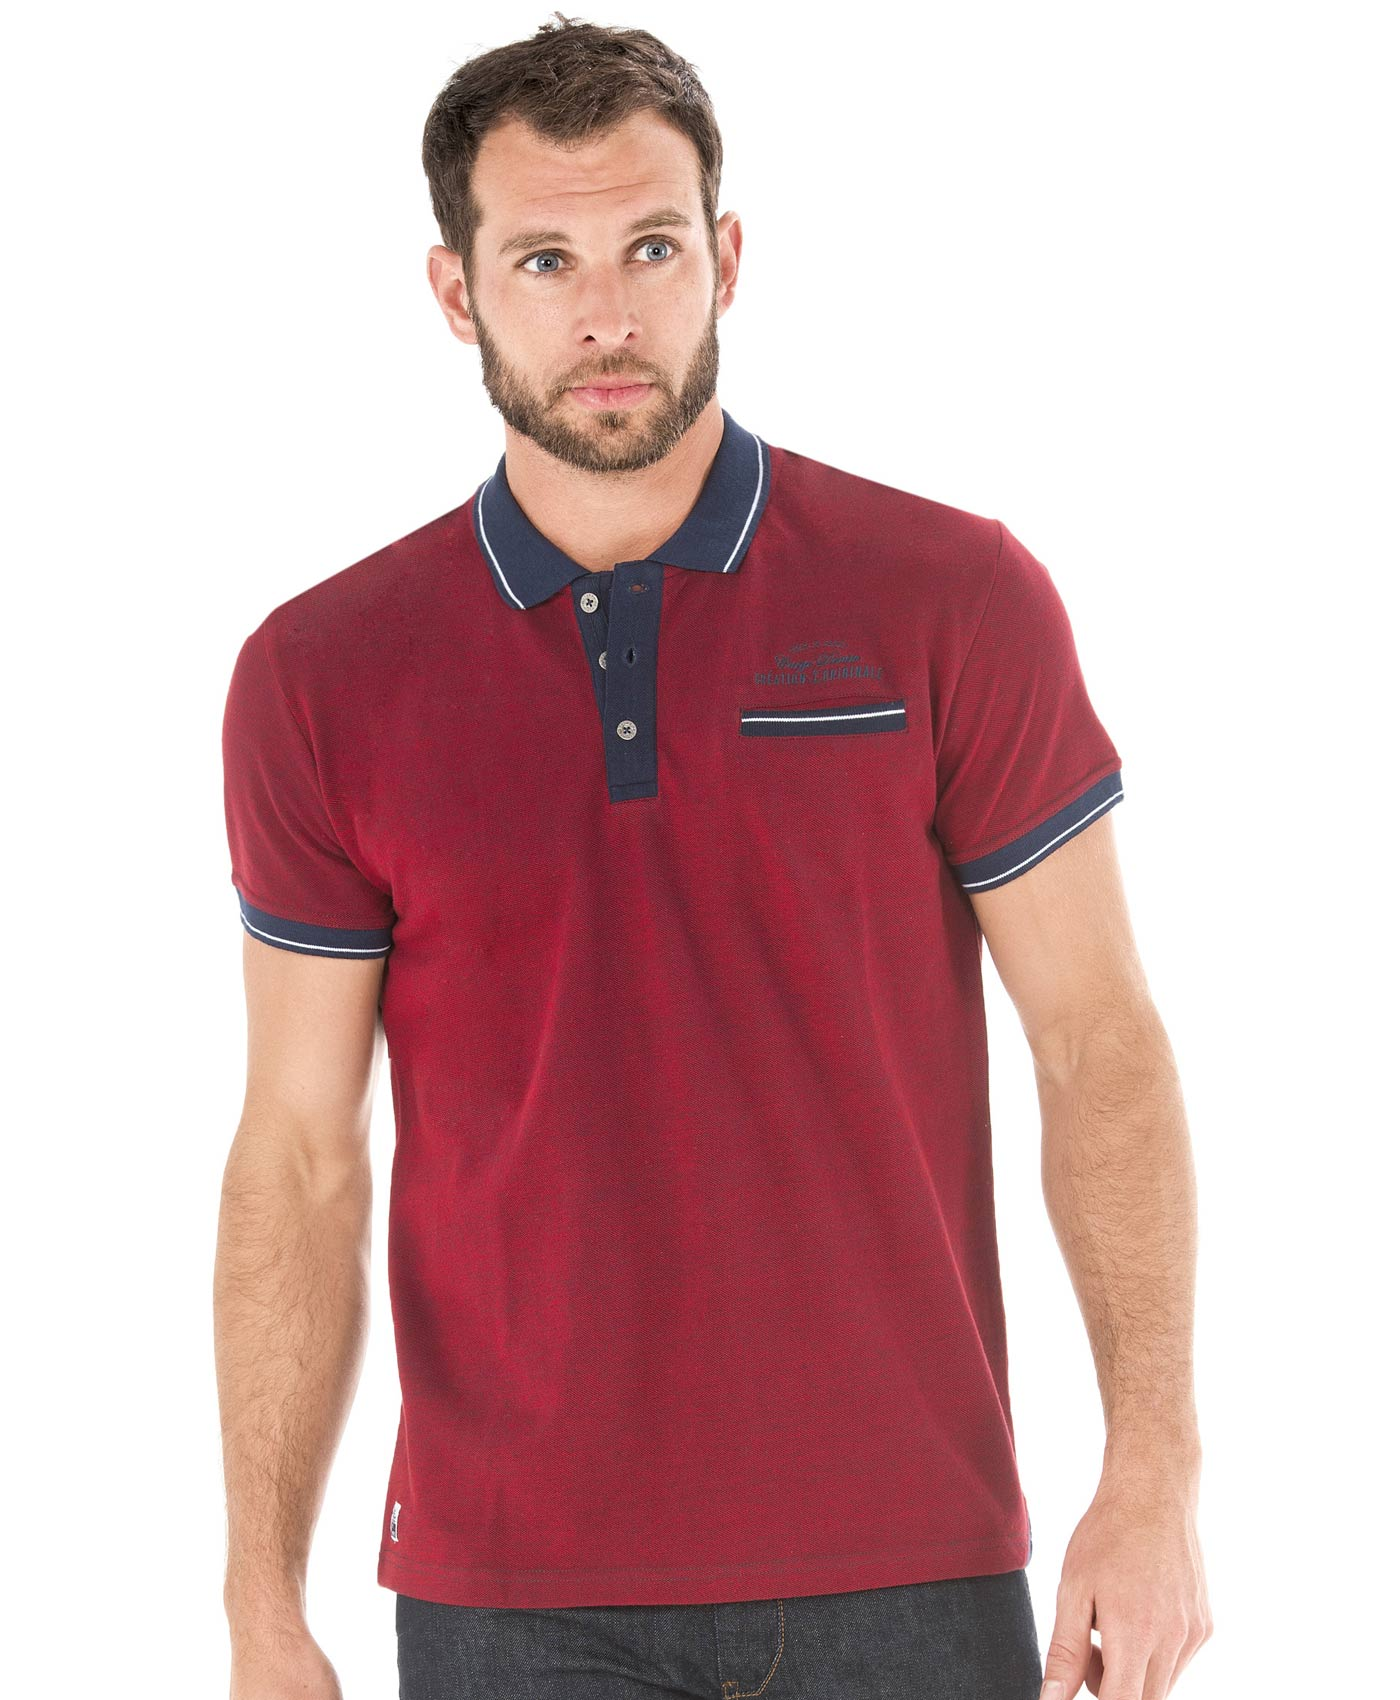 Polo manches courtes homme rouge madder - Mode marine Homme